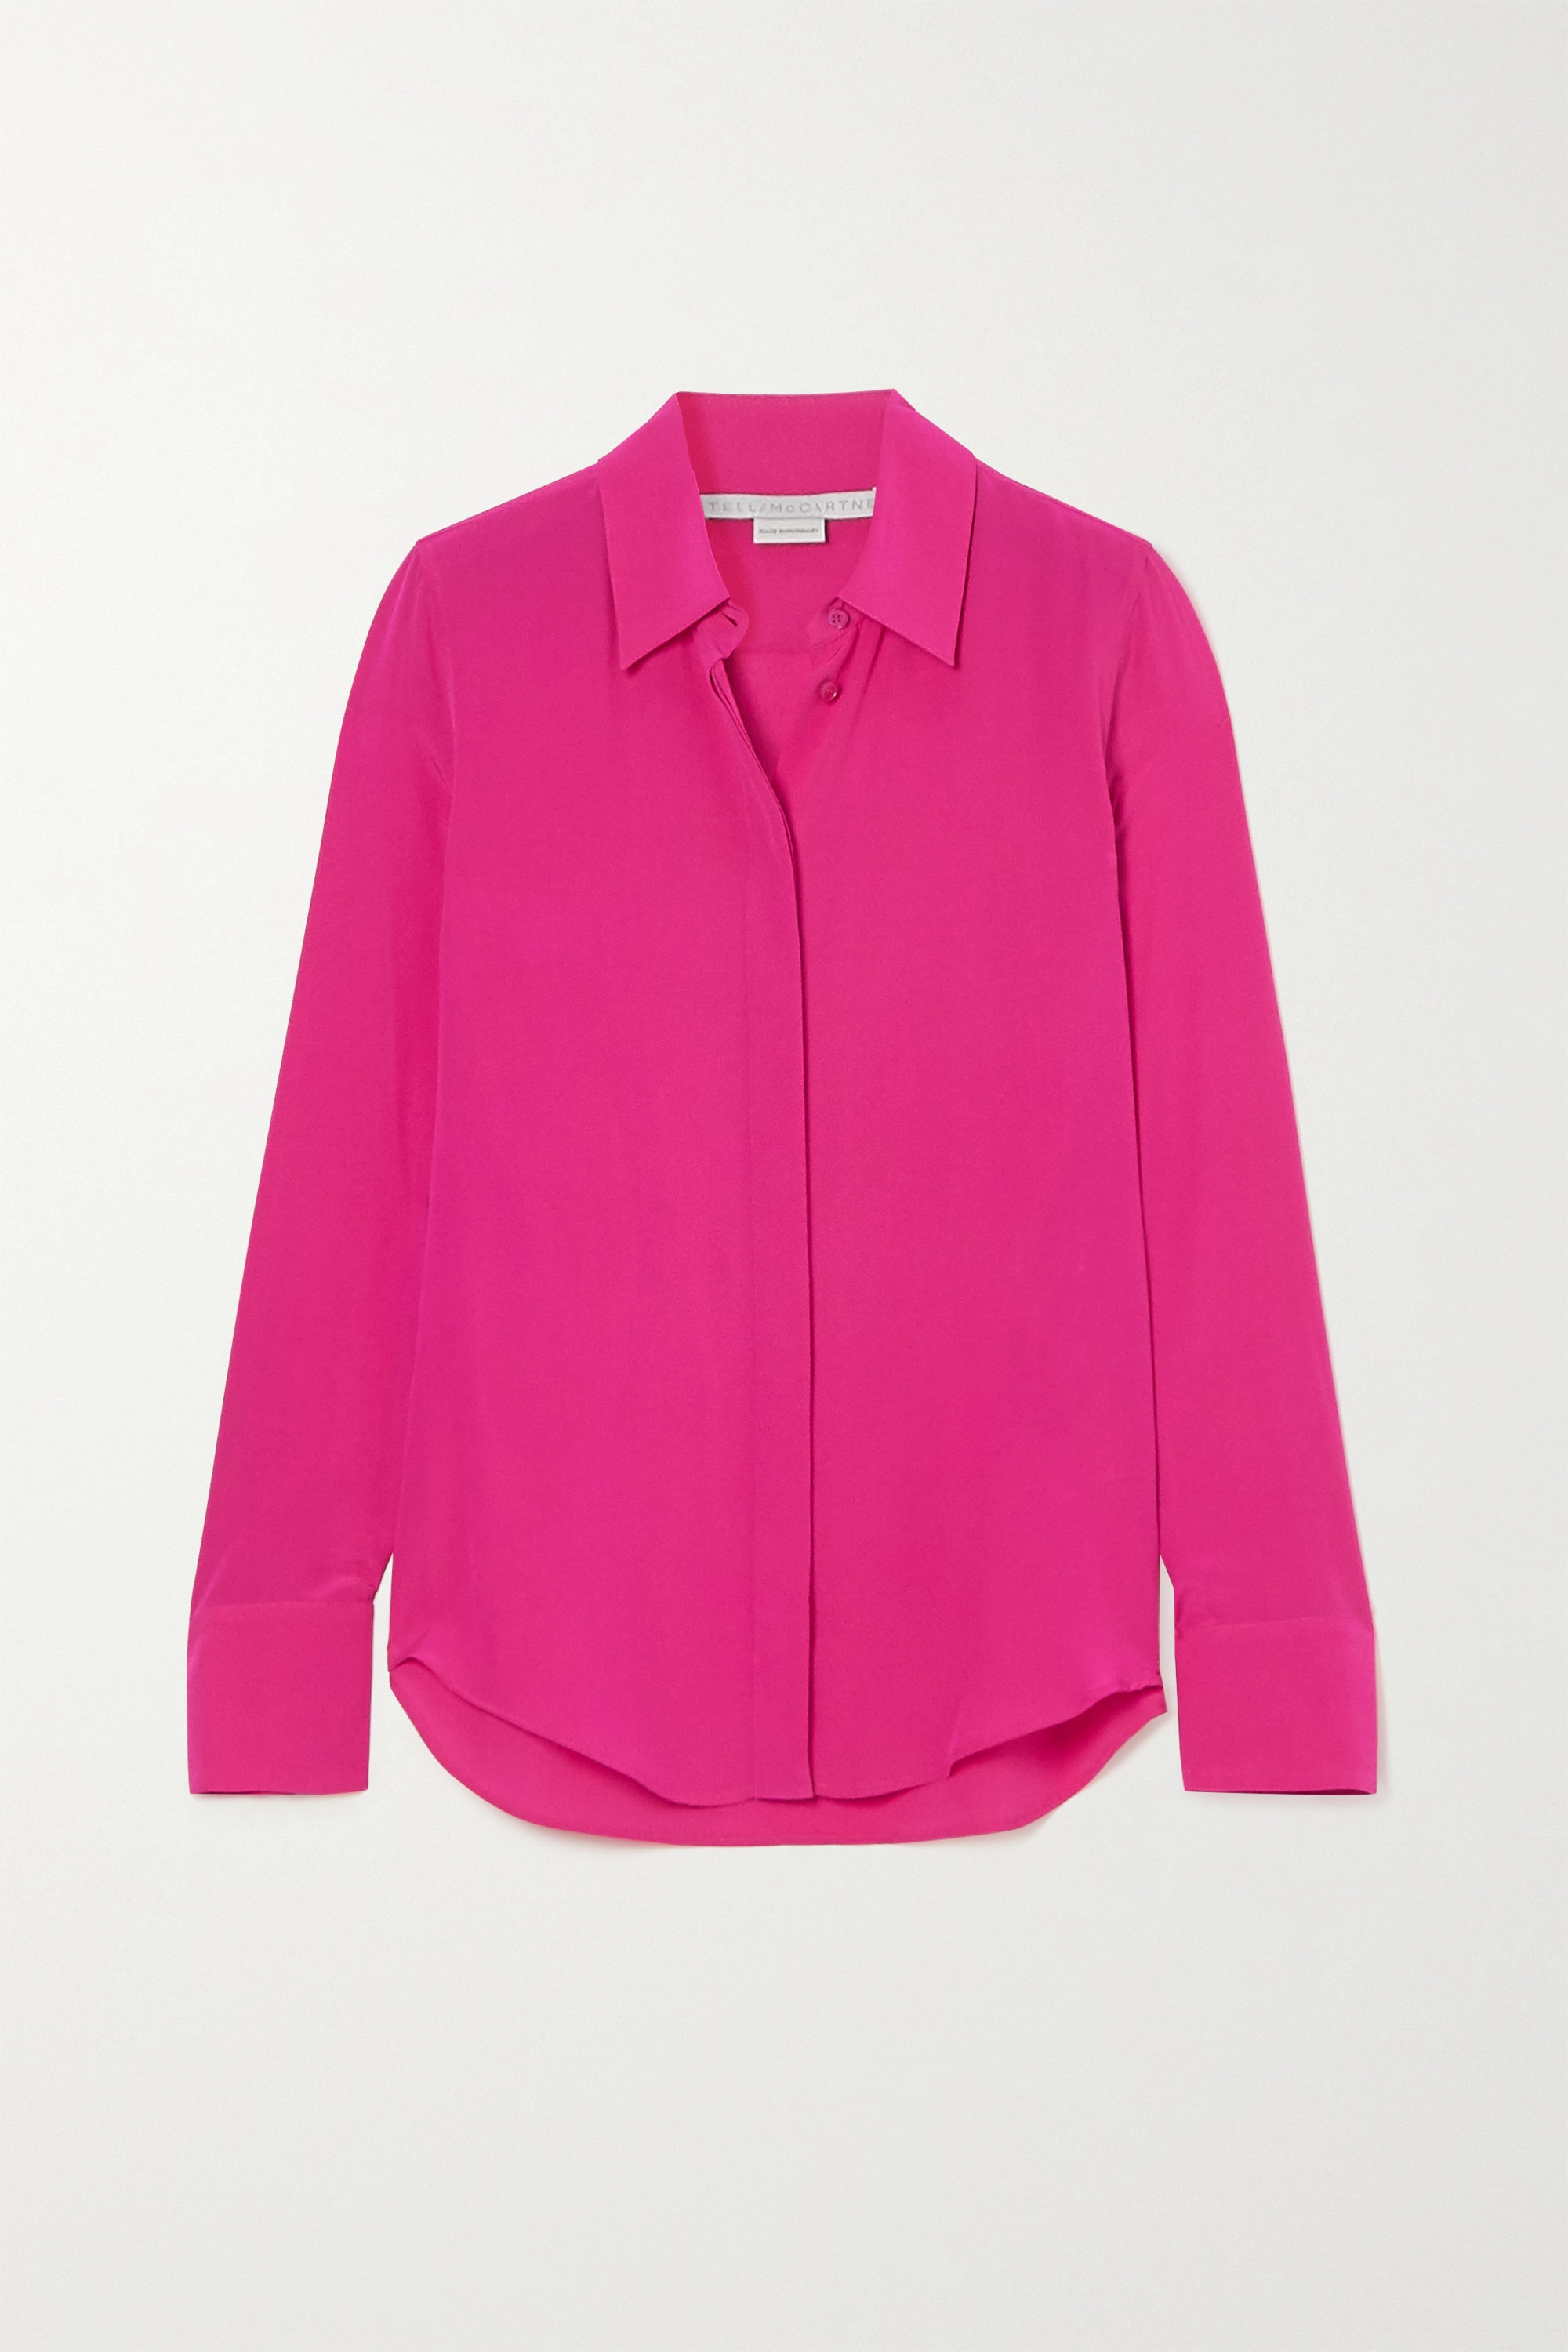 Stella McCartney Willow silk crepe de chine shirt